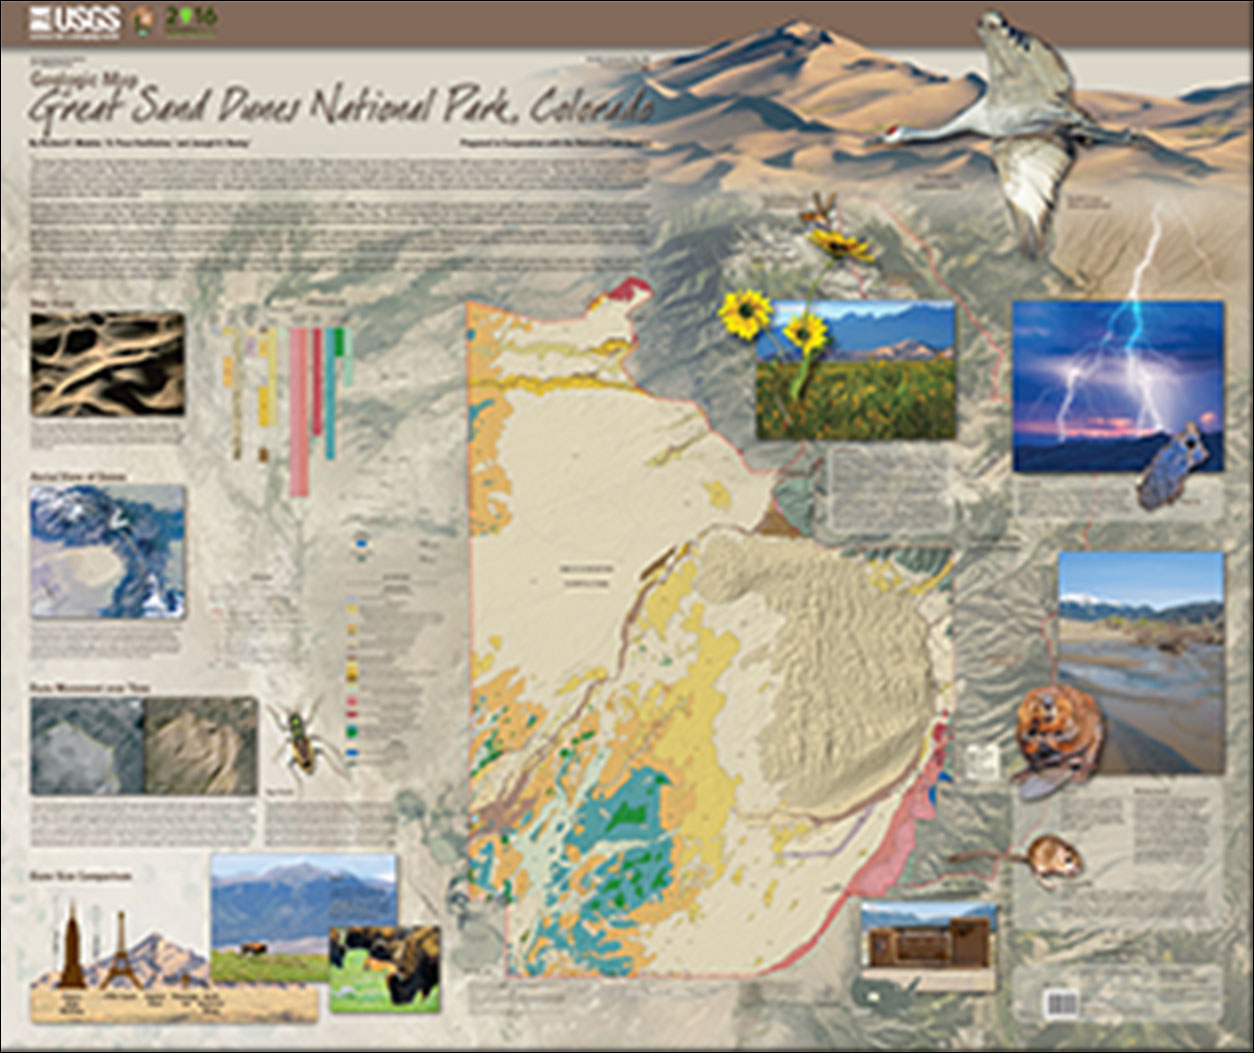 Geologic map of Great Sand Dunes National Park, Colorado on california national park map, sand flats campground calaveras county, canyons national park map, moon national park map, colorado map, volcanoes national park map, mexico national park map, sand creek colorado, namibia map, river national park map, grasslands national park map, v&t railroad map, black canyon of gunnison map, namib desert map, garden of the gods map,